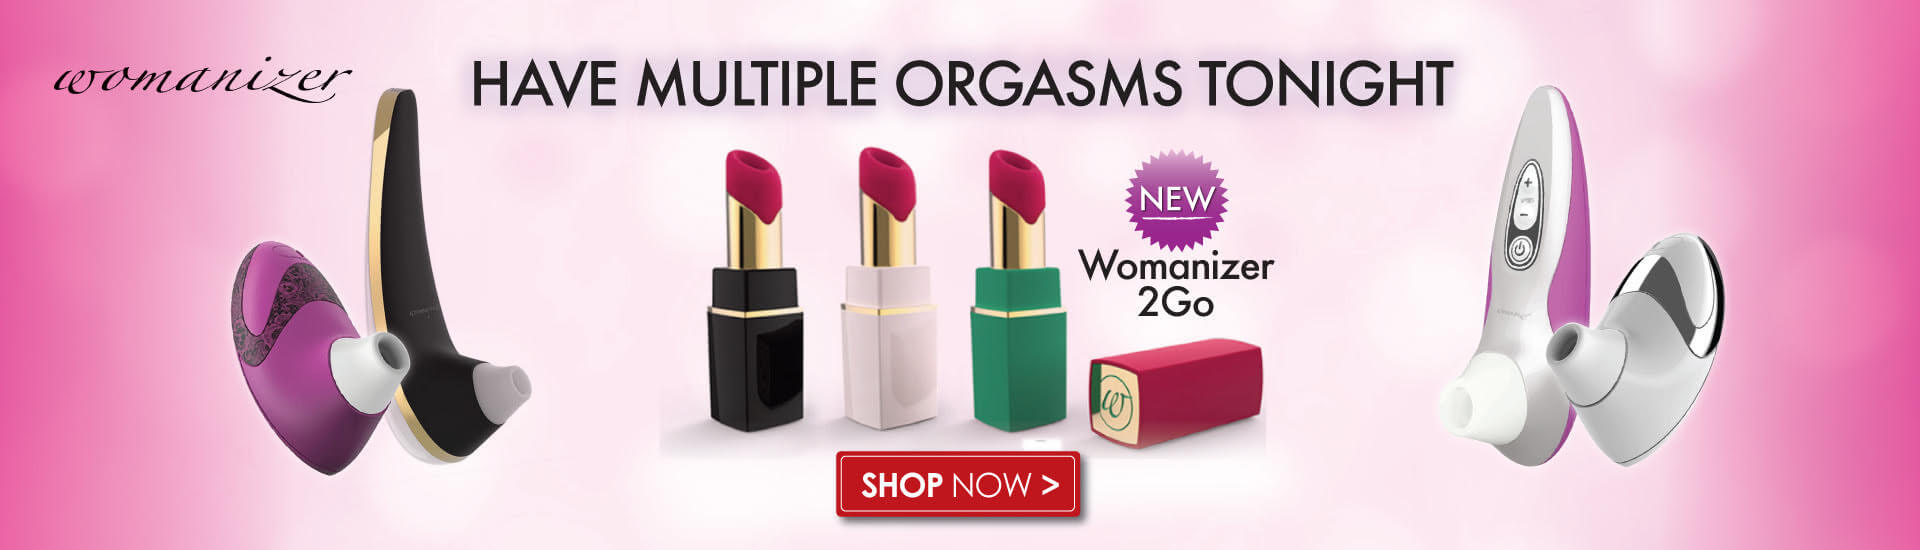 Have multiple orgasms with the Womanizer